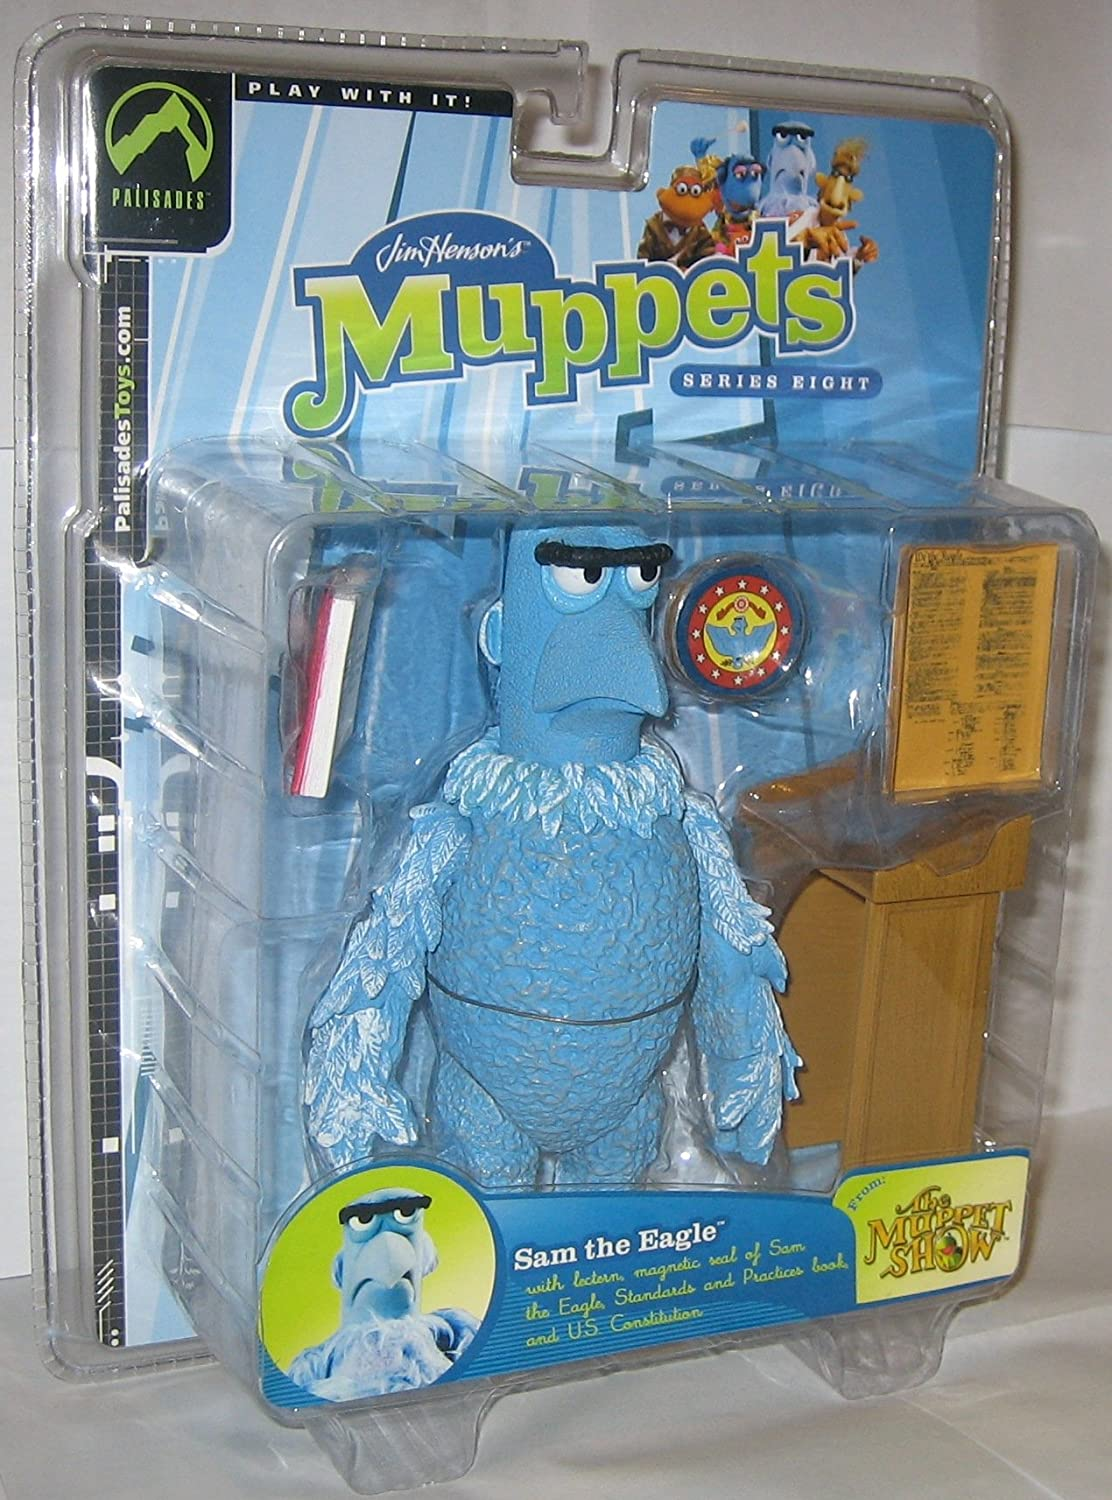 Muppets Sam the Eagle Shifty Eyed Variant Version Series 8 by Palisades